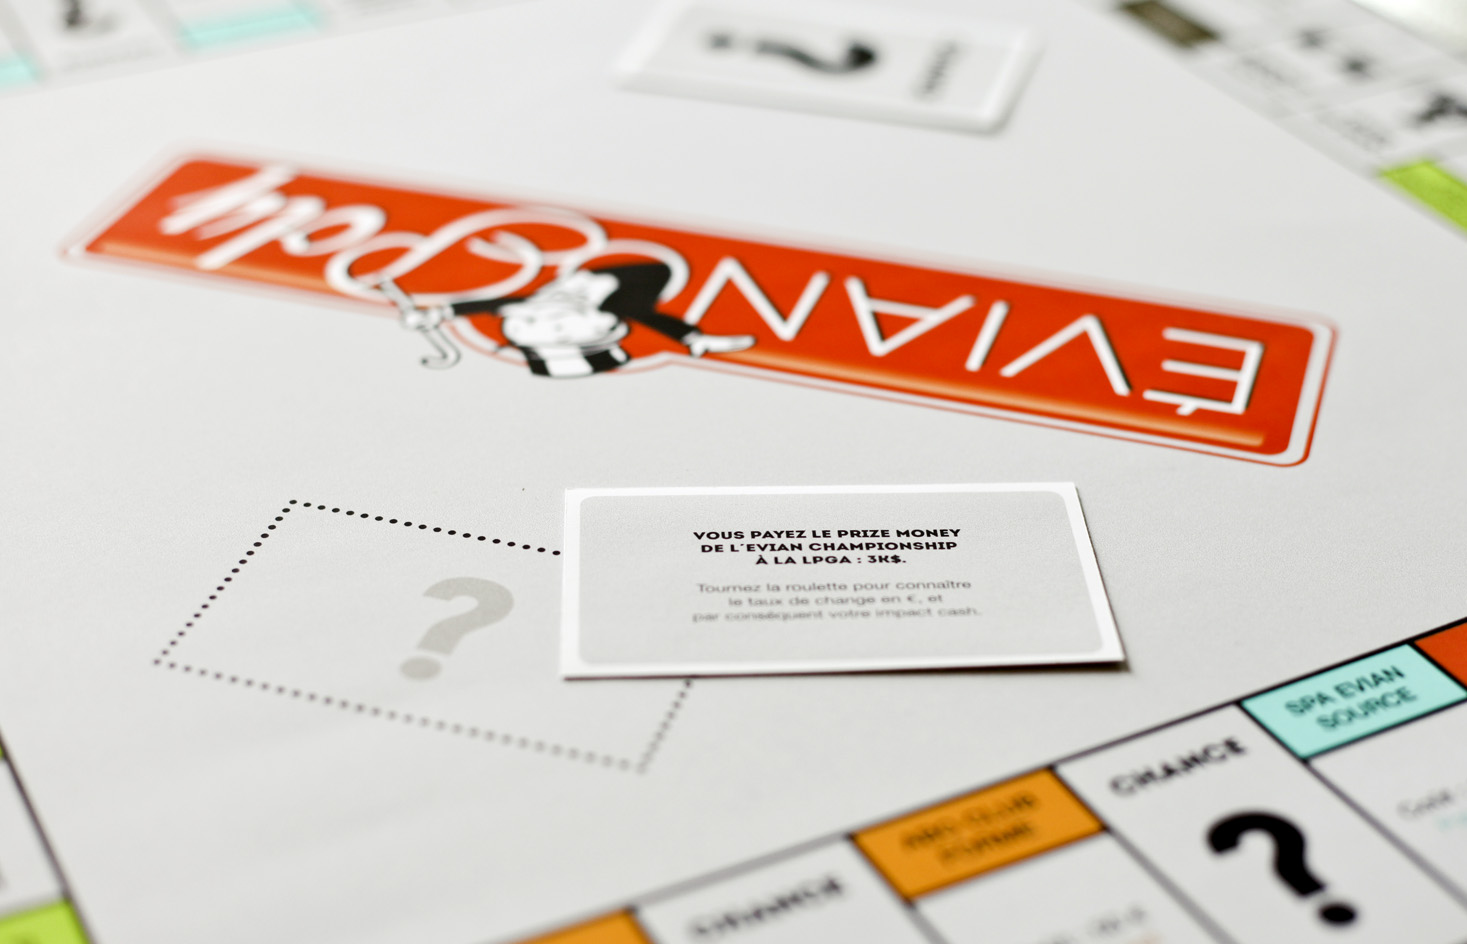 Work_17_Evianopoly_2